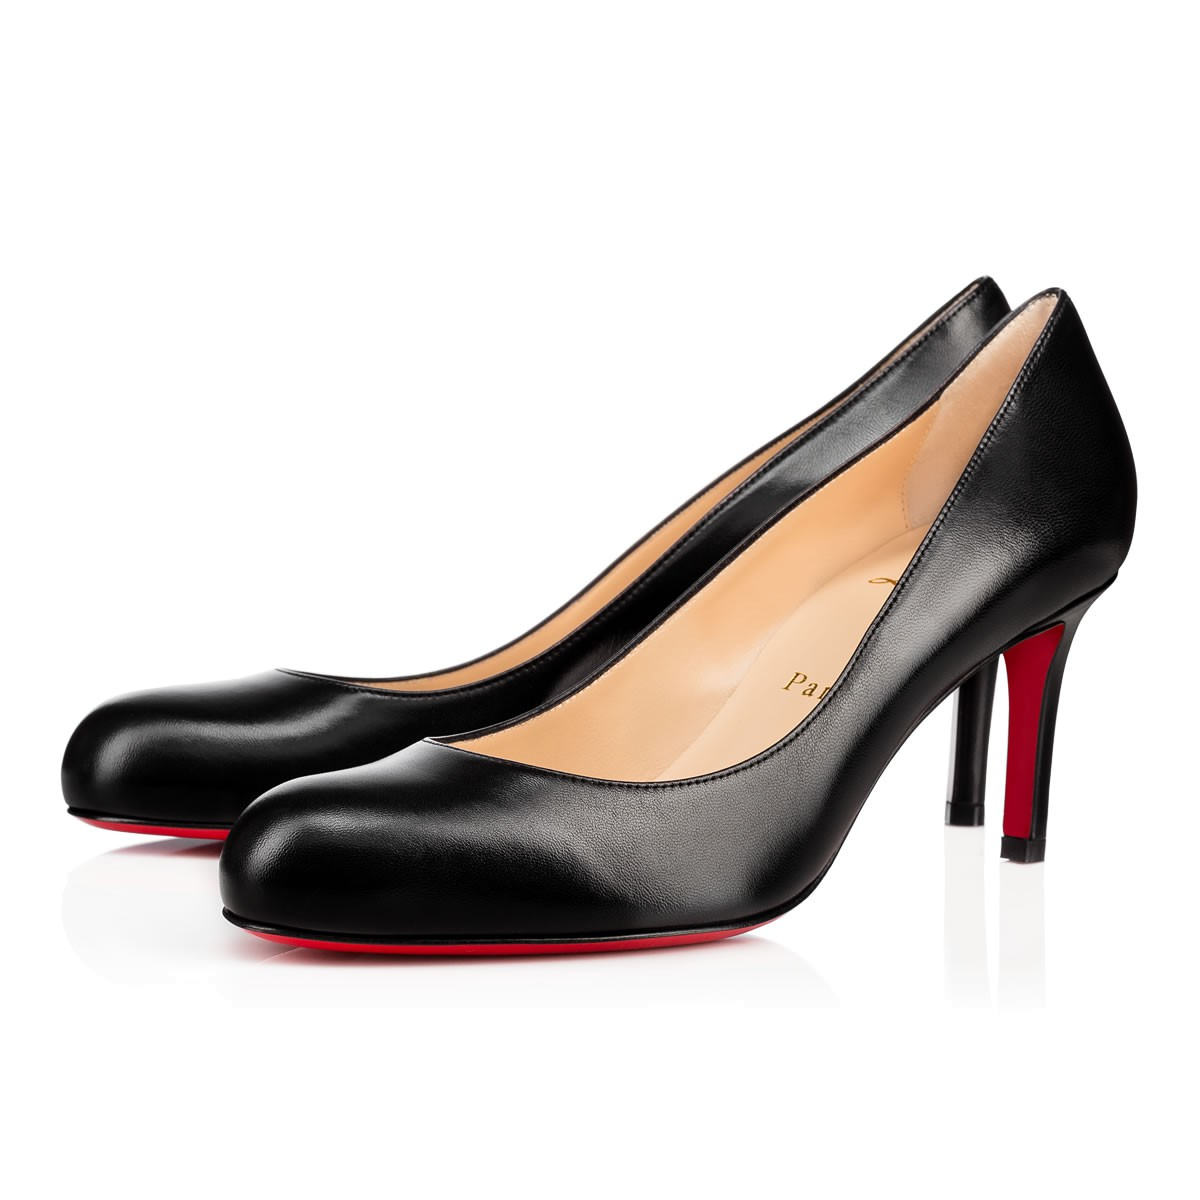 CHRISTIAN LOUBOUTIN Bailarinas spain